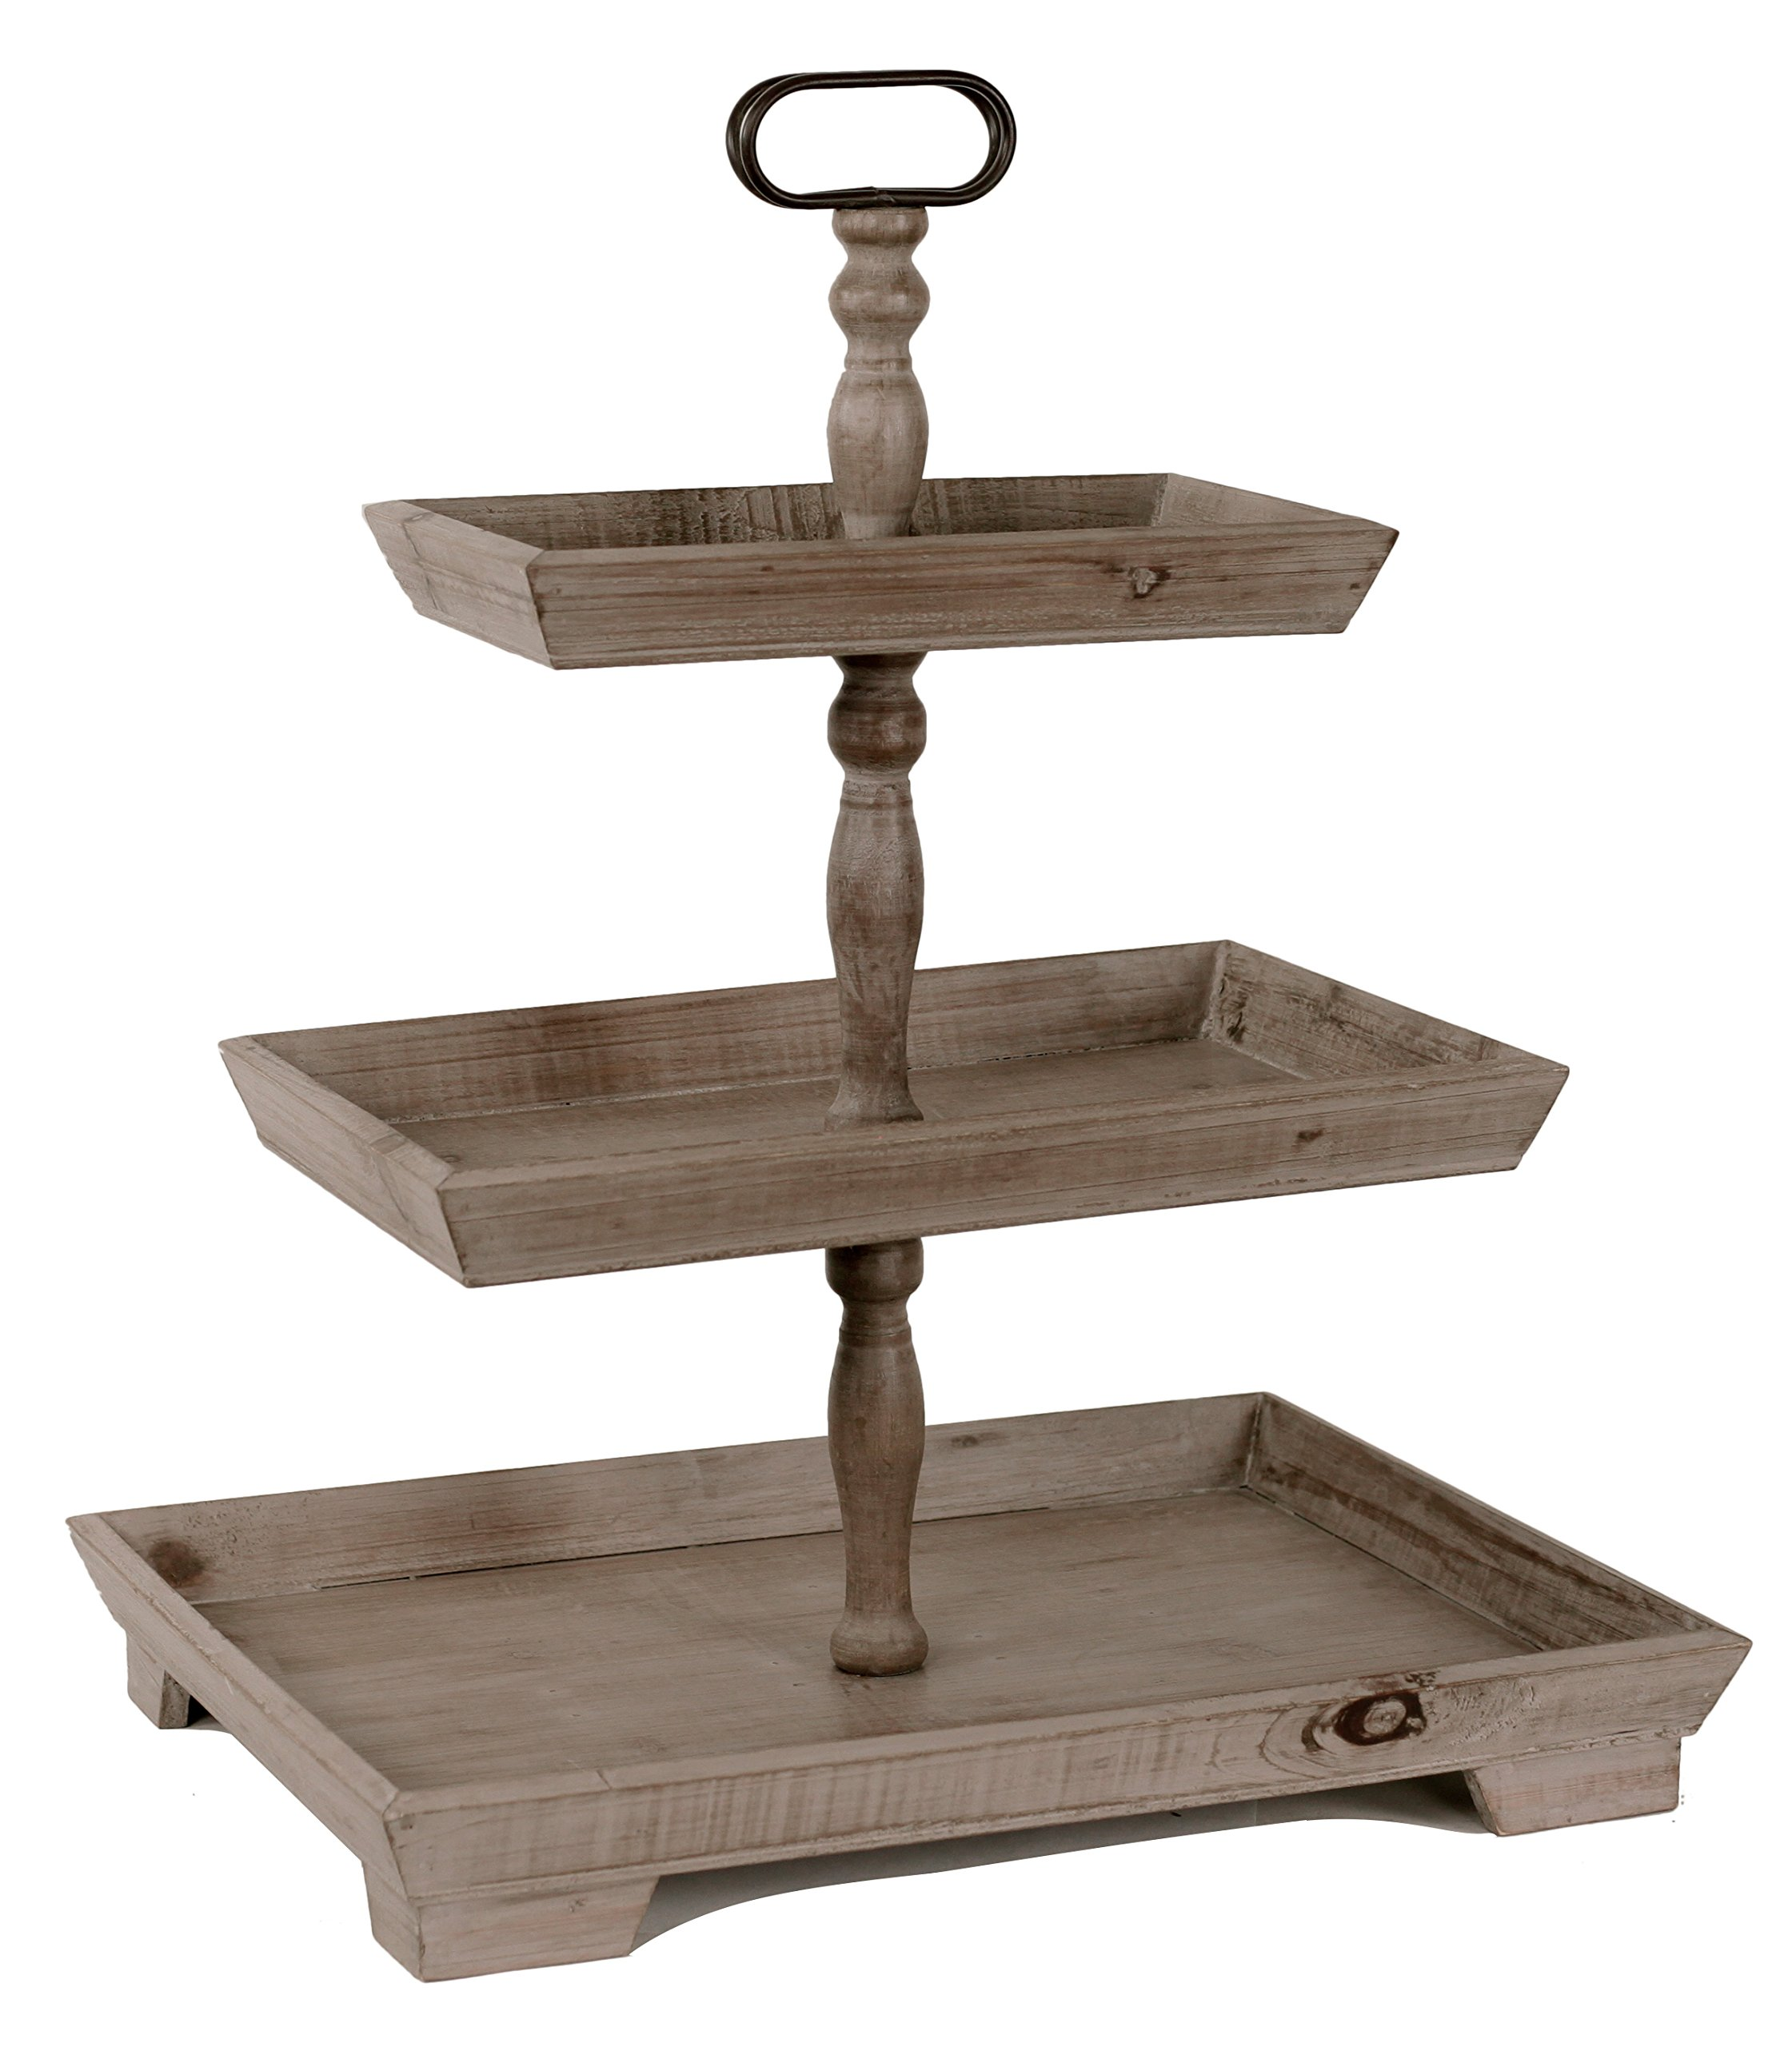 Oohlong Market, Rustic Recycled Pine Rectangular 3 Tier Display